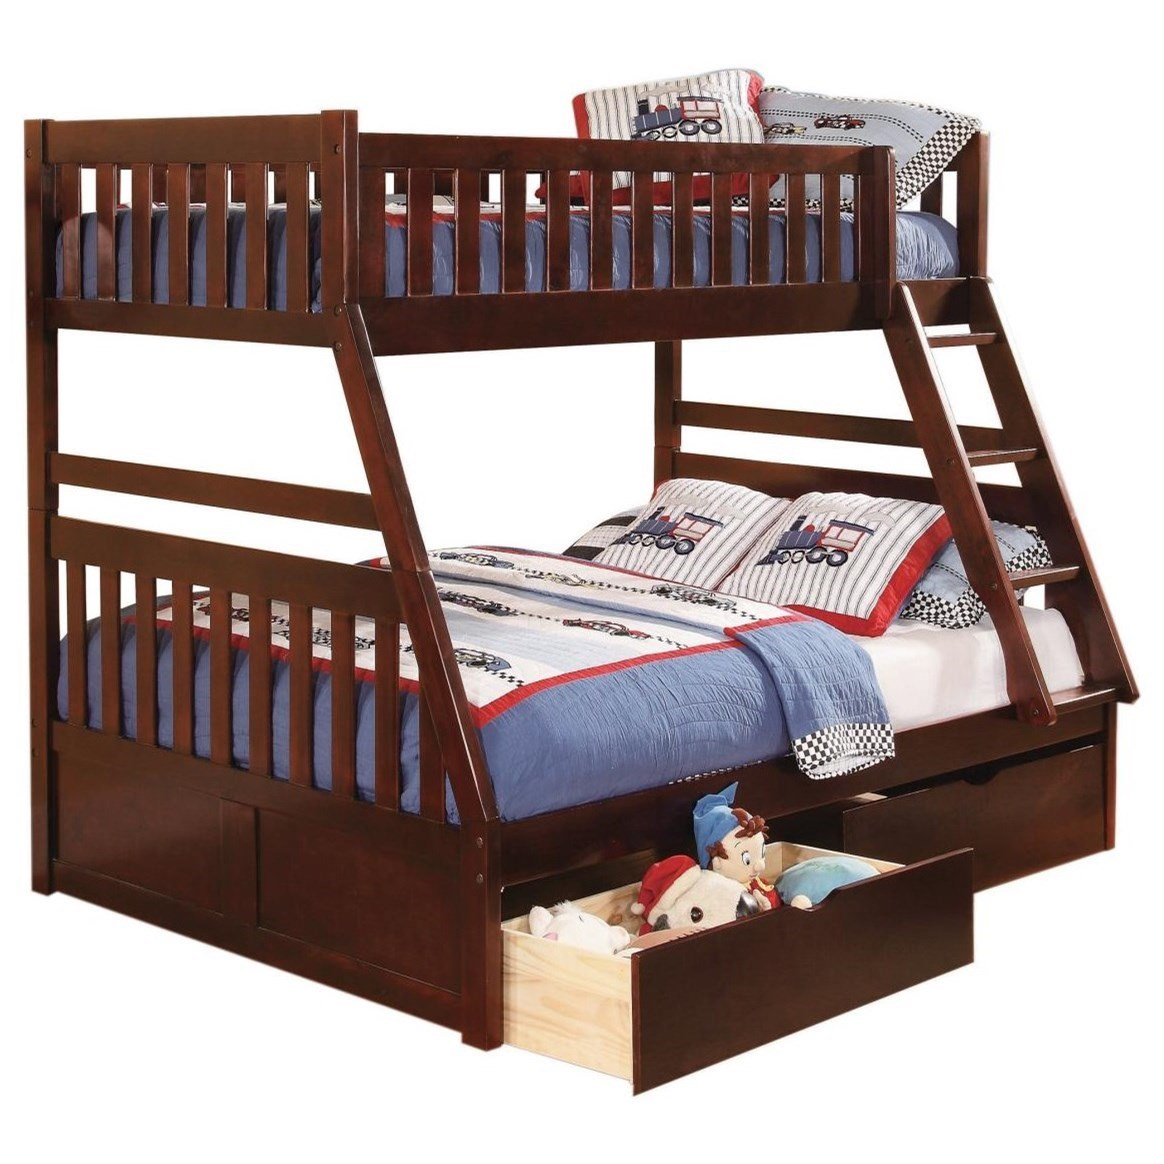 Cherry Twin Over Full Storage Bunk Bed by Home Style at Walker's Furniture